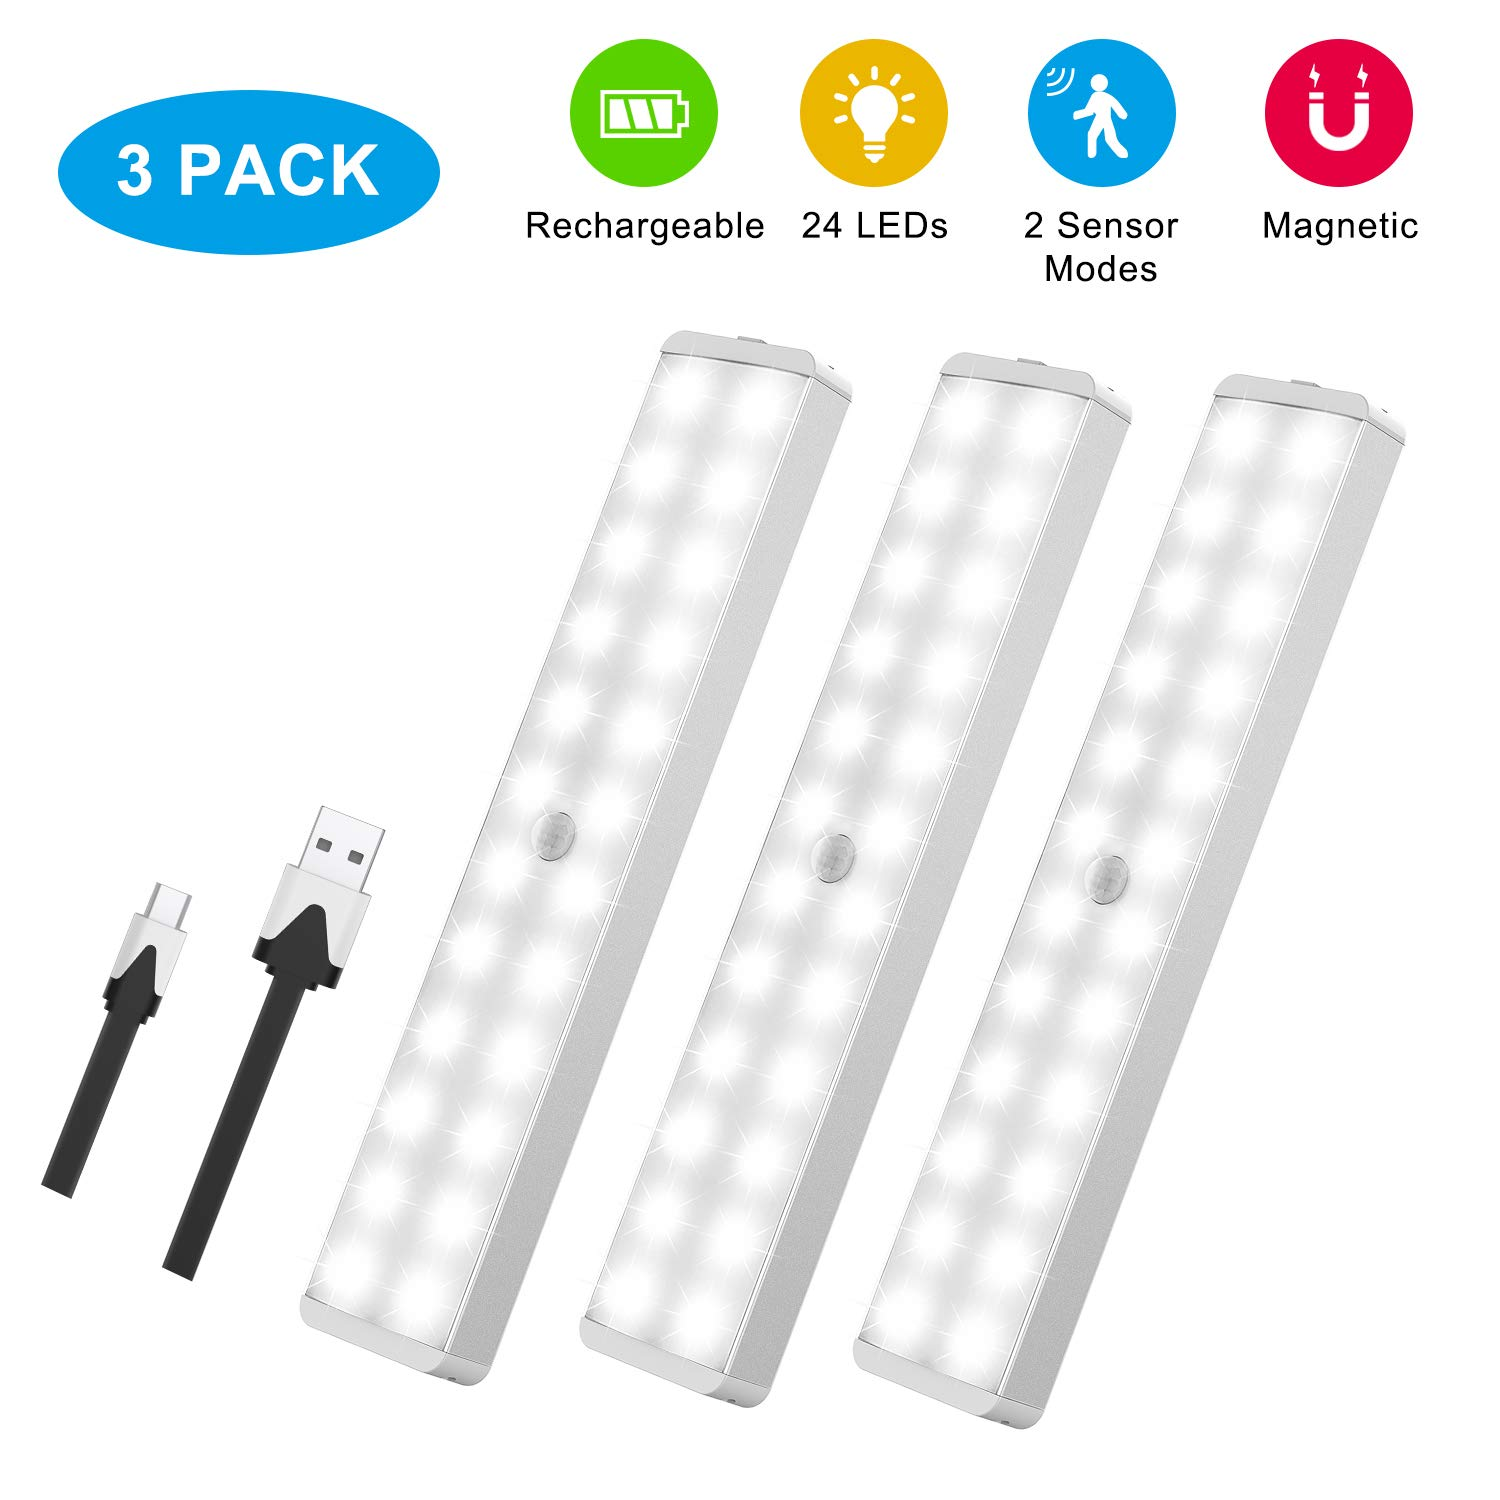 LED Closet Light, 24-LED Rechargeable Motion Sensor Closet Light Wireless Under Cabinet Light Stick on Night Light Bar for Closet Hallway Cabinet Stairway Wardrobe Kitchen 2 Sensor Modes (3 Pack) by CSHID-US